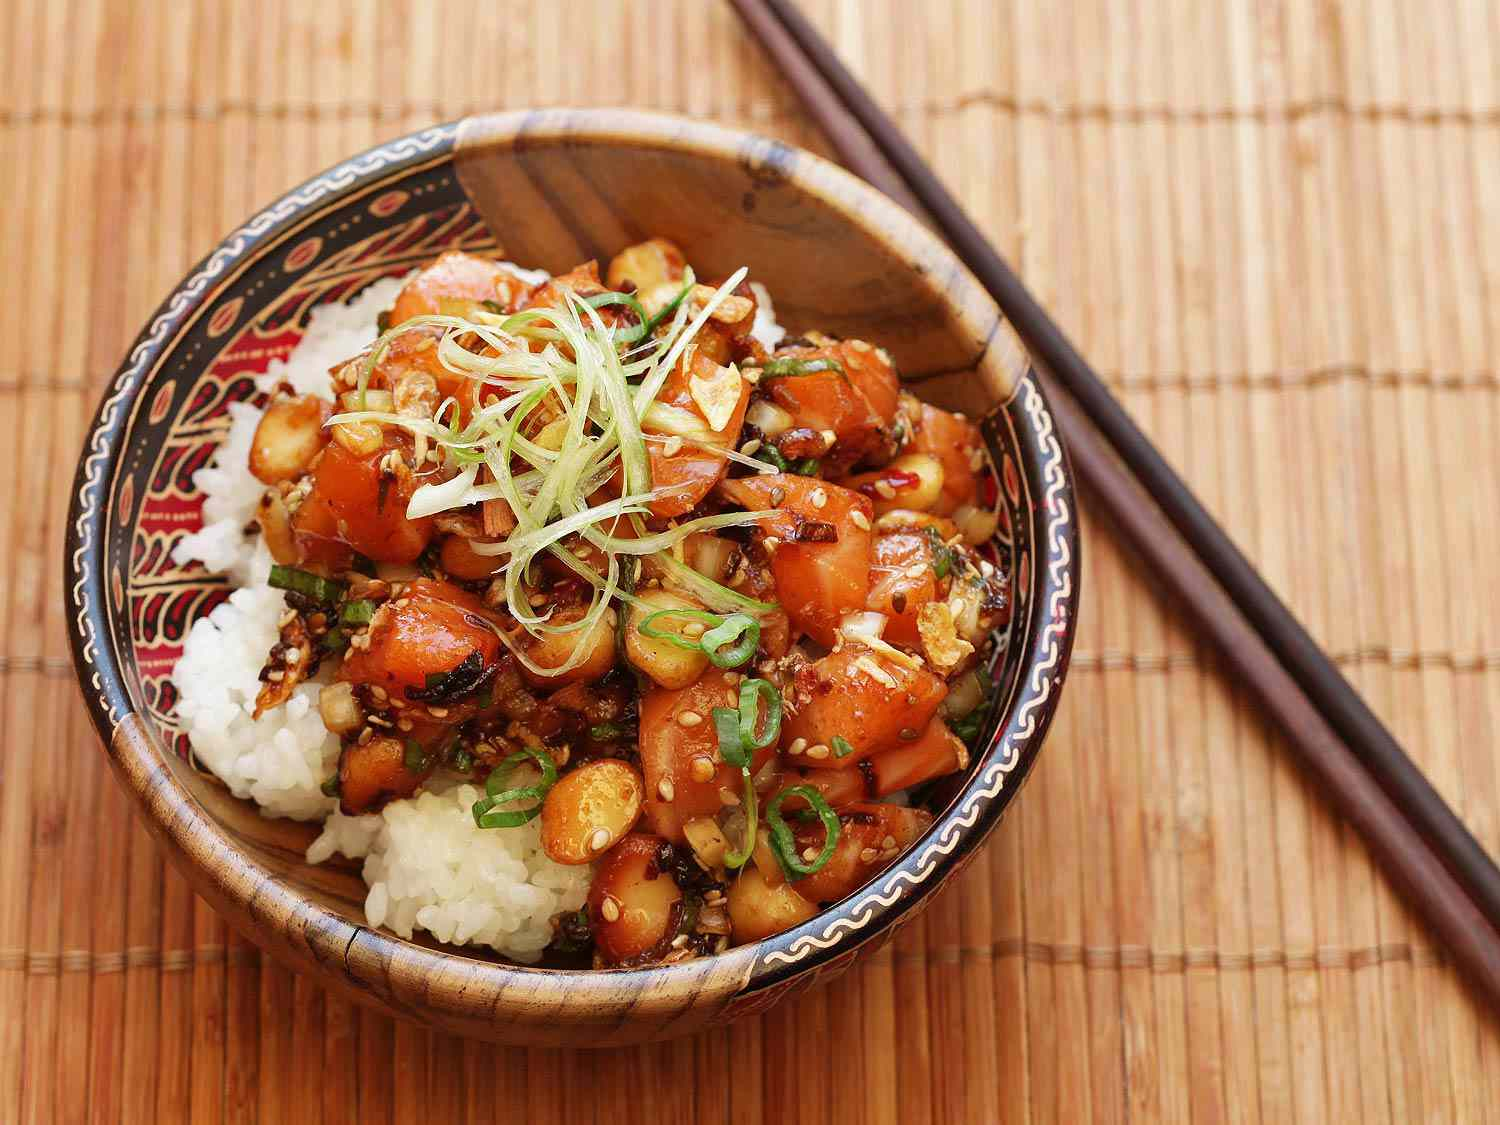 20160714-chilled-seafood-recipes-roundup-05.jpg